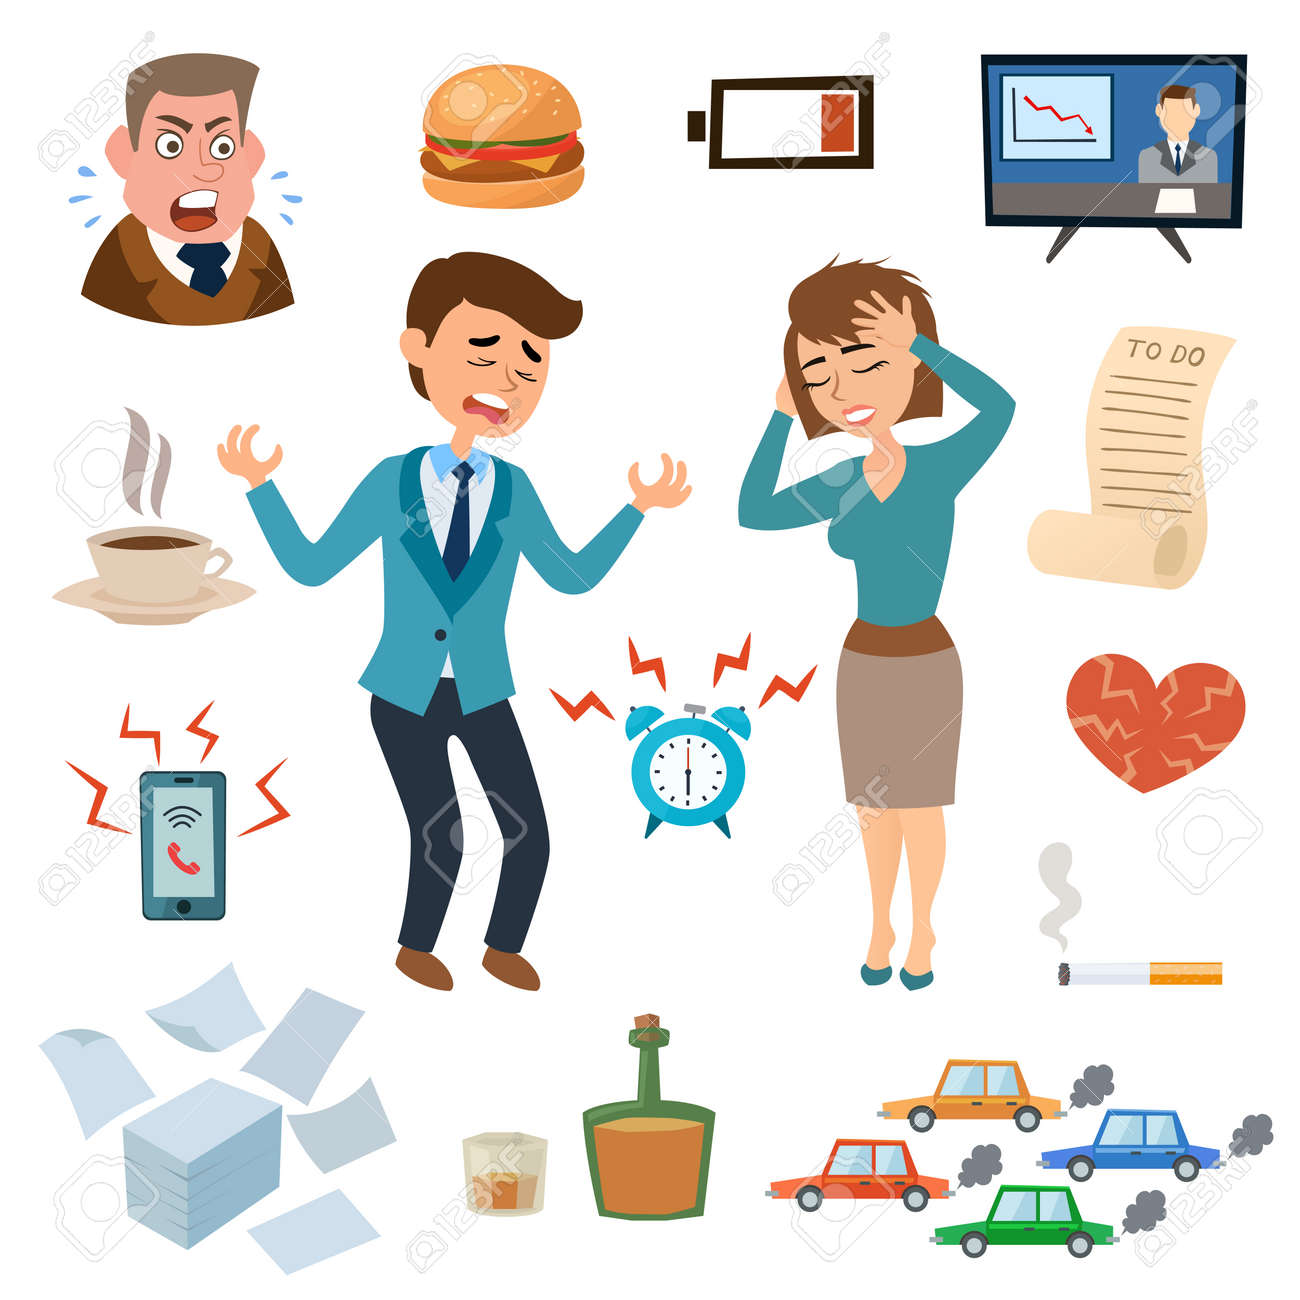 Stress people adult sad and problem stressed people. Stress people frustration overworked worried. Stress people pressure workplace tired unhappy adult sad problem frustration set vector illustration. - 54830376